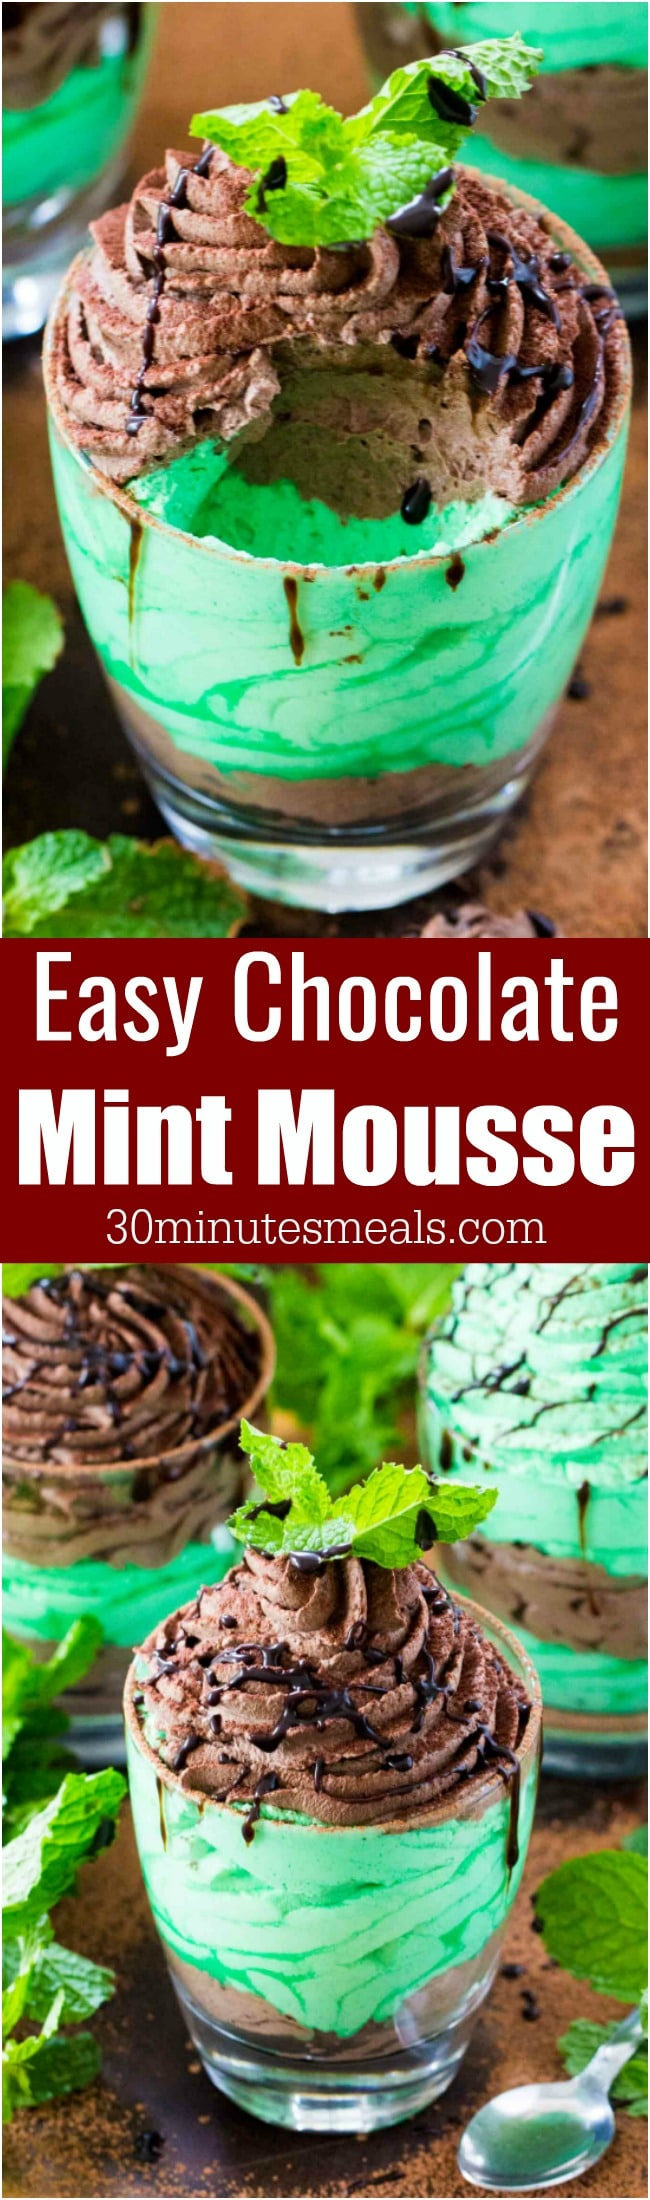 Chocolate Mint Mousse made with just a few ingredients is a flavorful and creamy take on the classic, more labor intensive mousse.